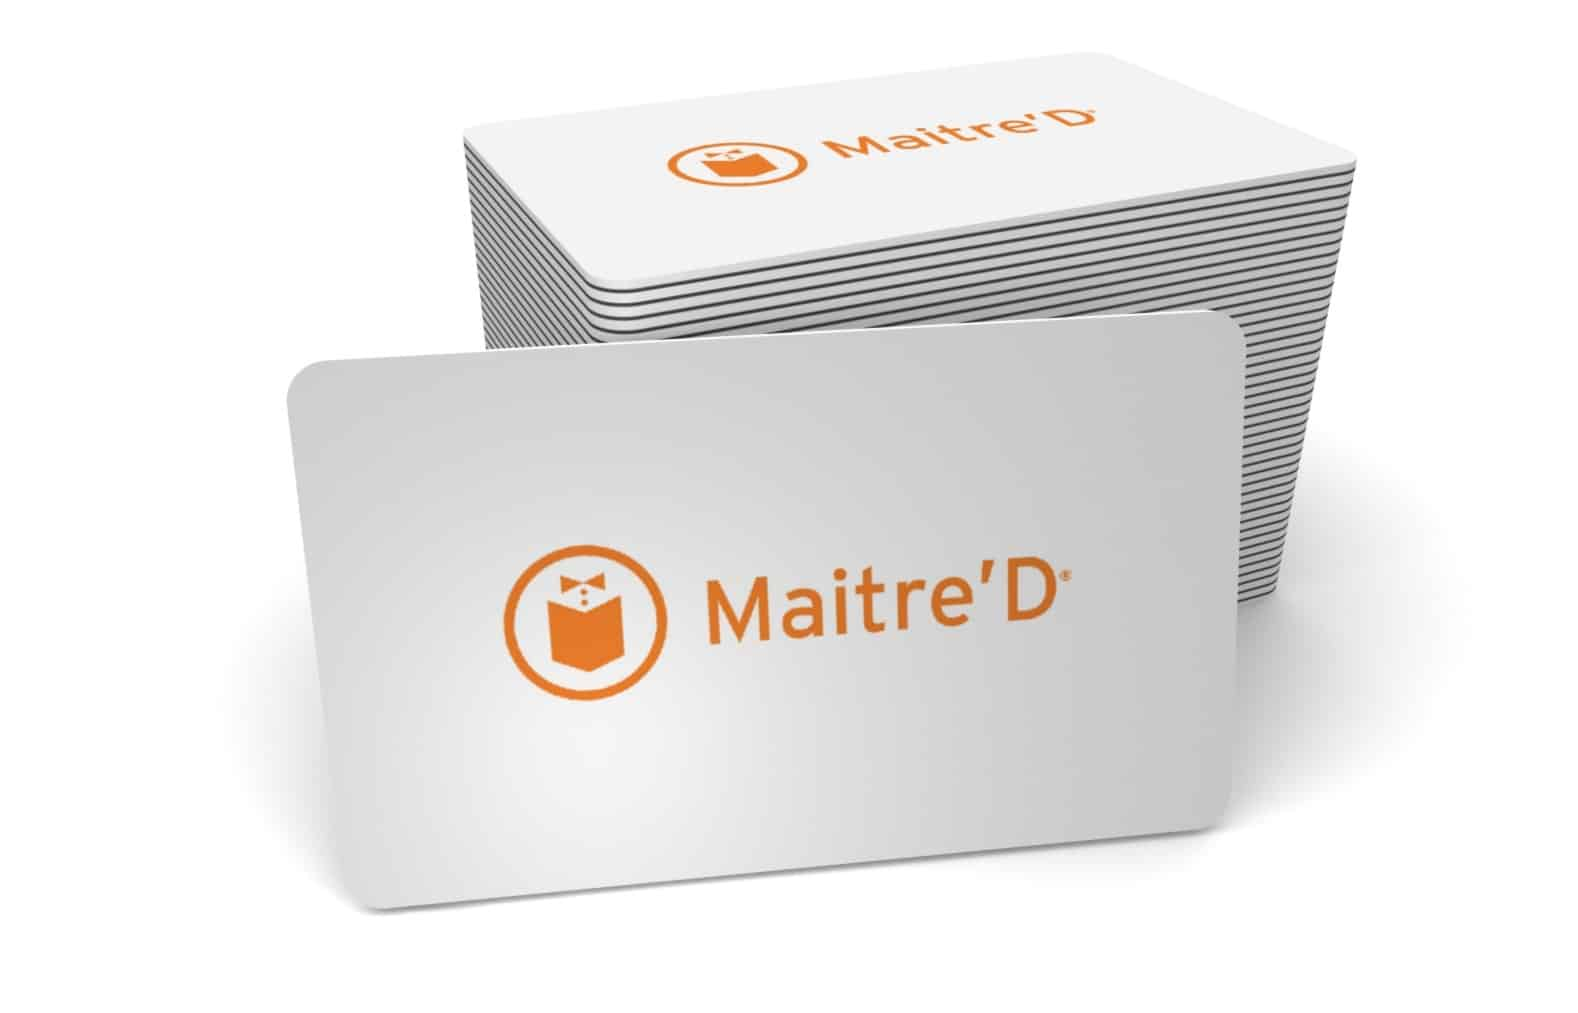 Maitred server swipe cards for What is a maitre d